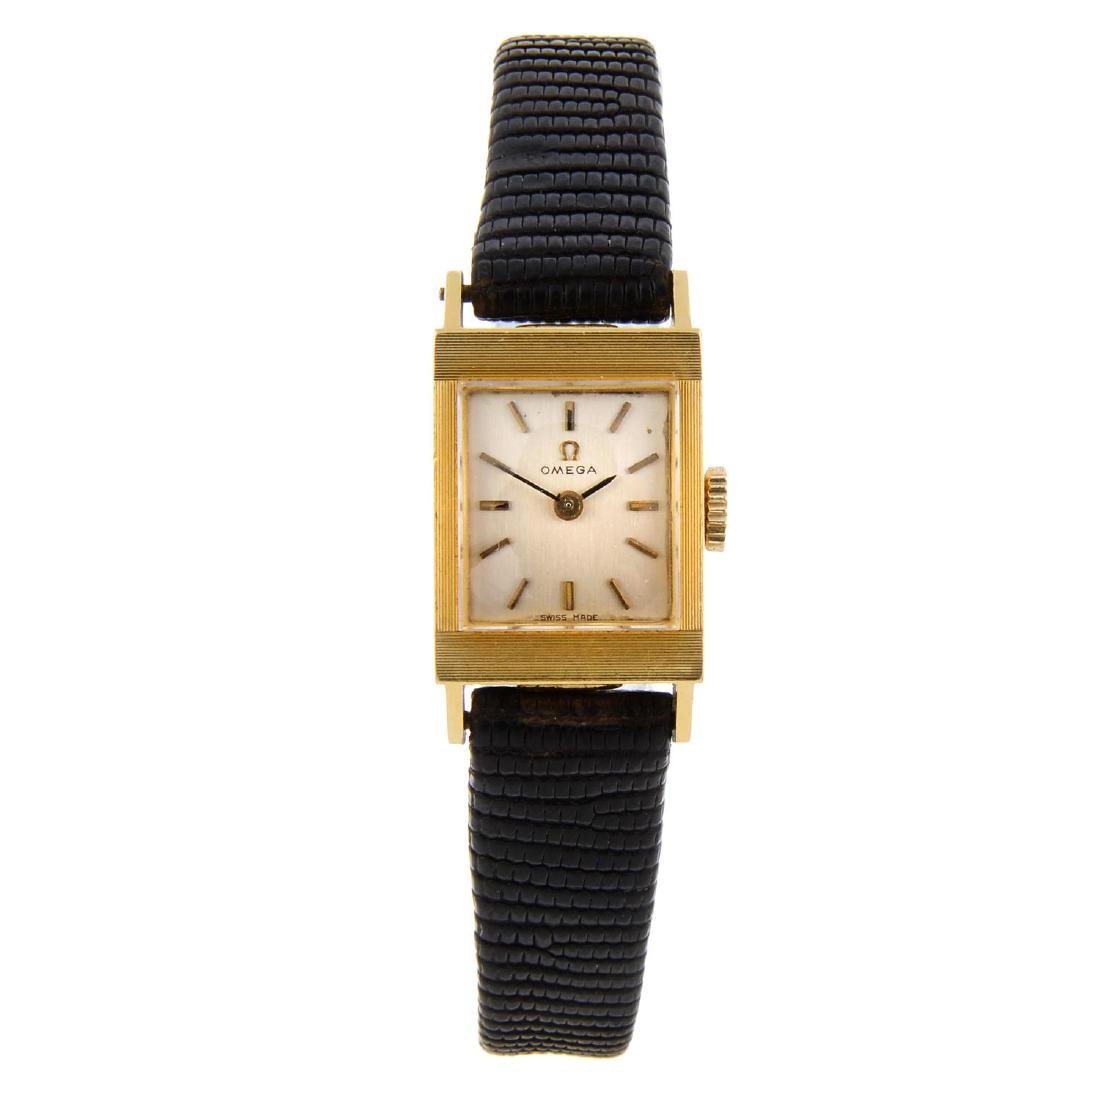 OMEGA - a lady's wrist watch. Yellow metal case,